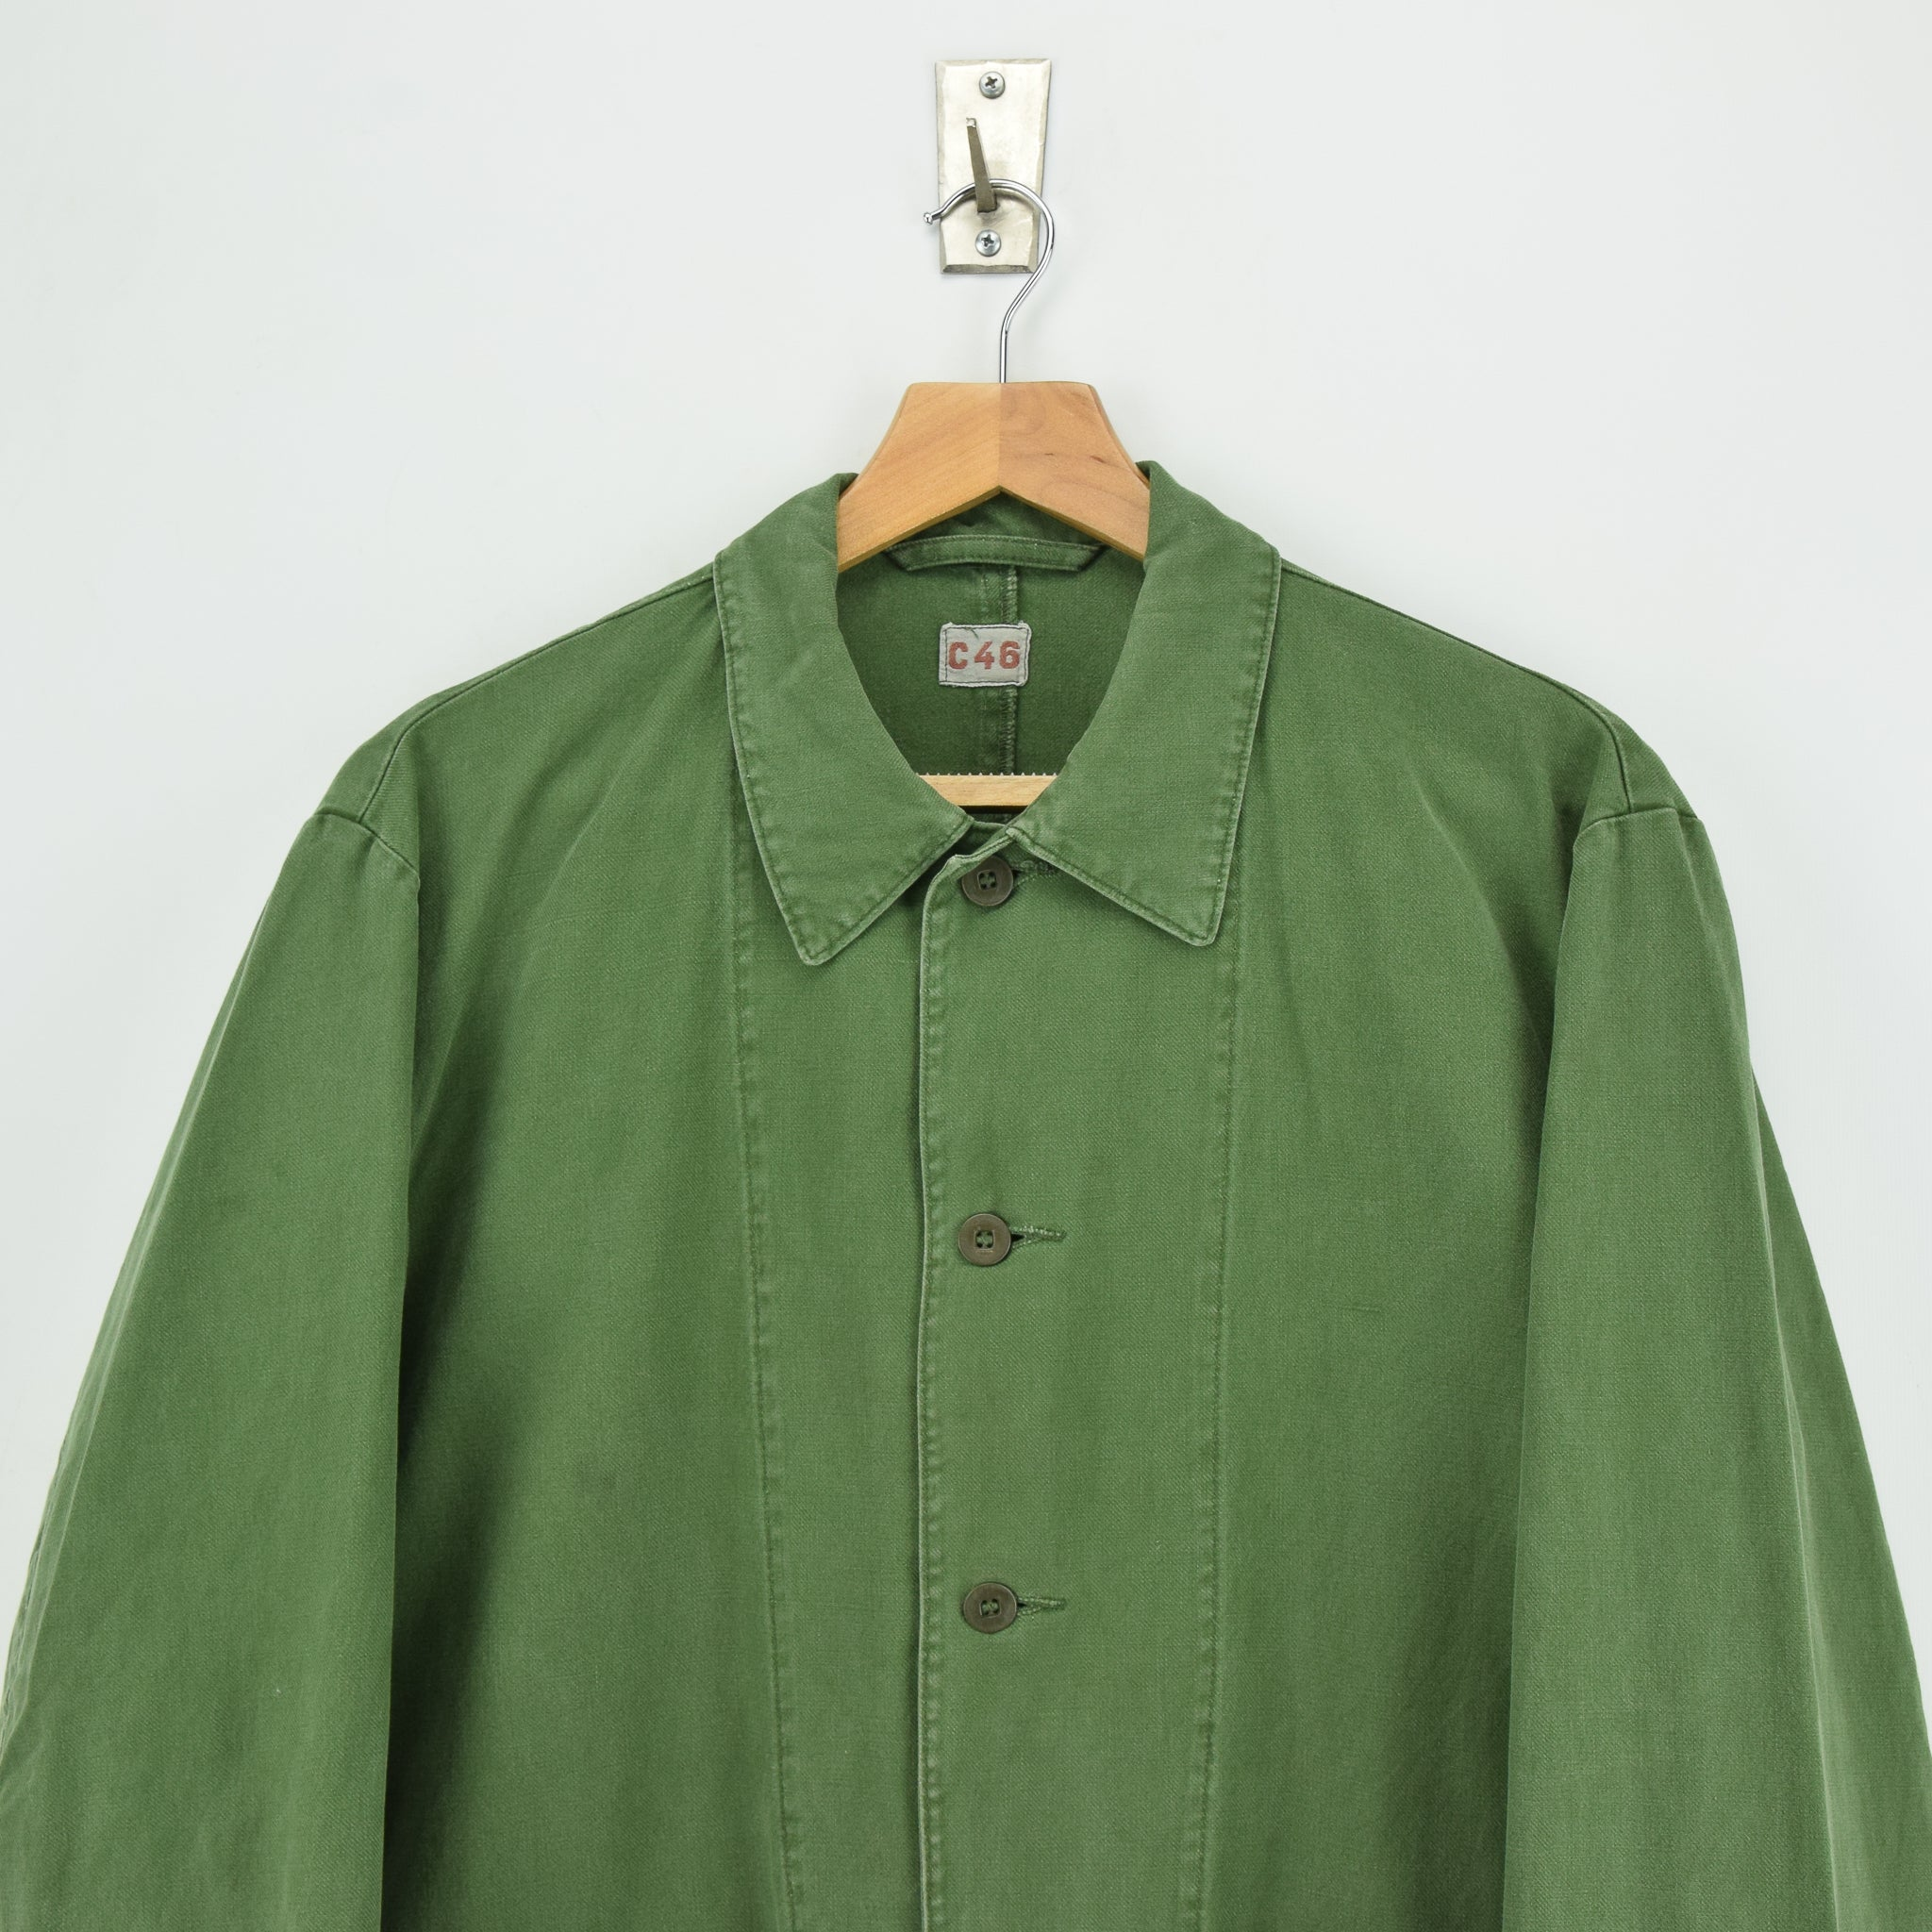 Vintage Swedish Worker Style Green Distressed Military Cotton Field Jacket M chest